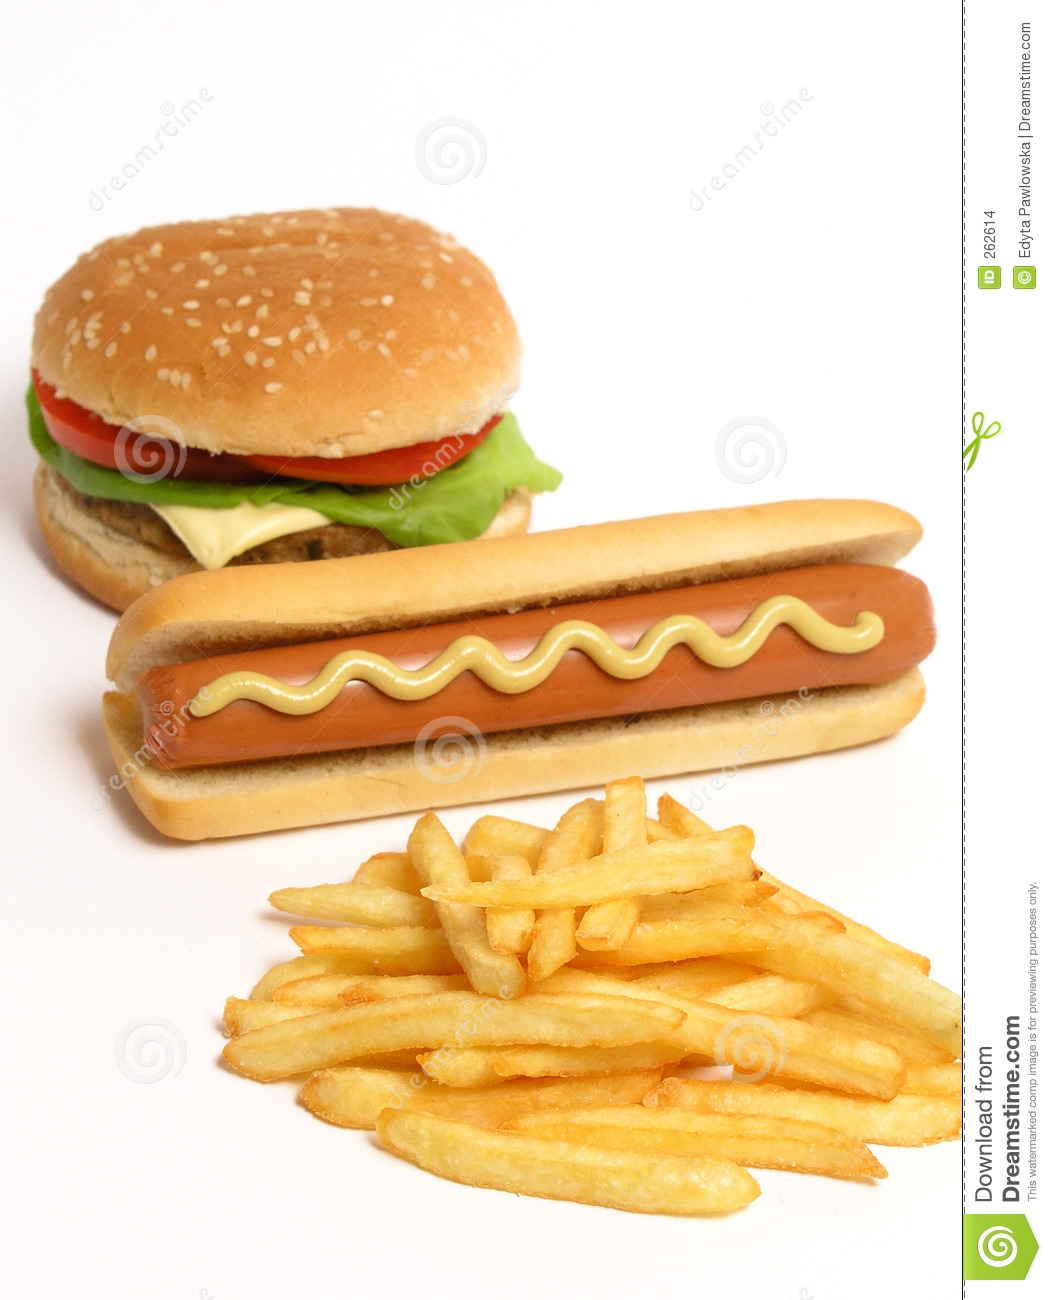 hamburger hot dog and french fries stock photo image of lunch french 262614. Black Bedroom Furniture Sets. Home Design Ideas